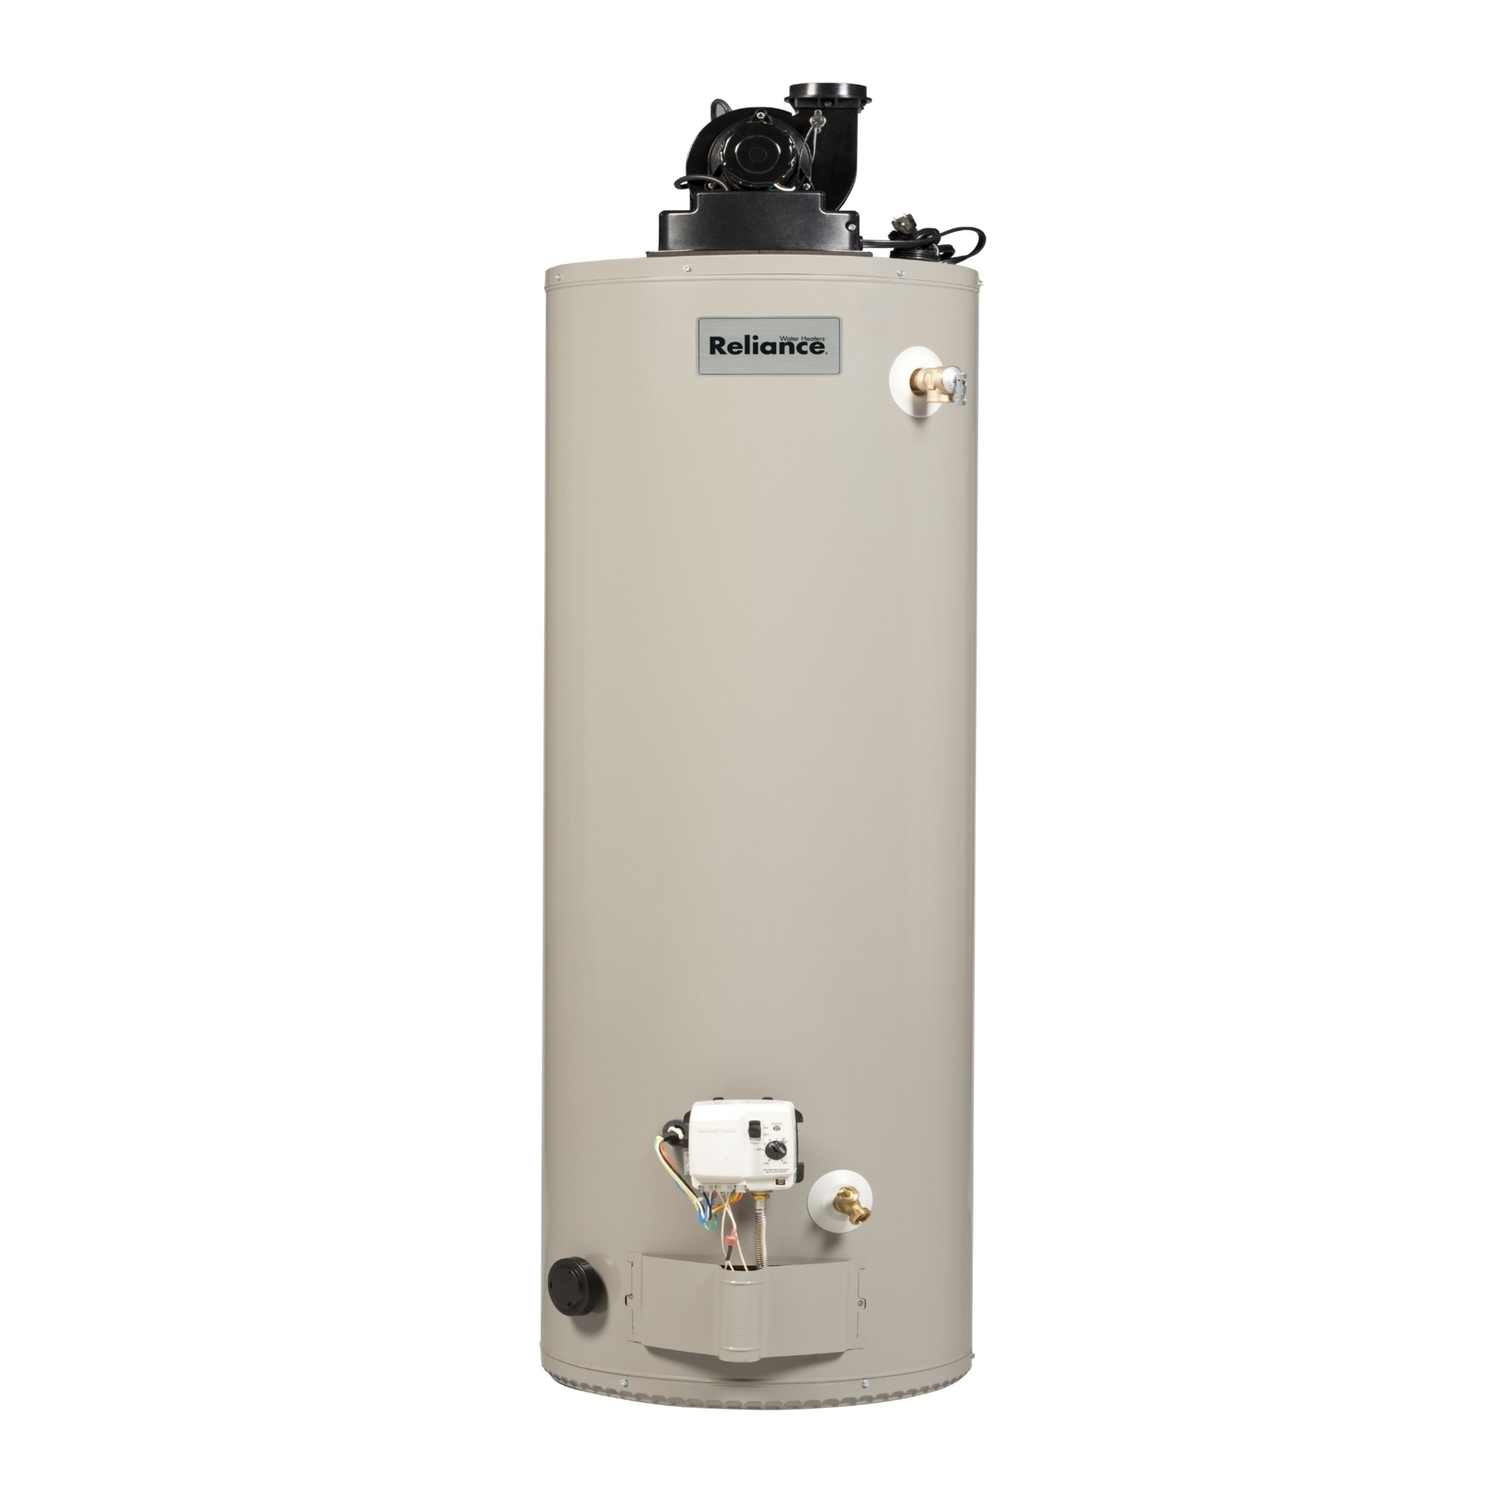 Reliance  Water Heater  Natural Gas  40 gal. 59 in. H x 22 in. L x 22 in. W